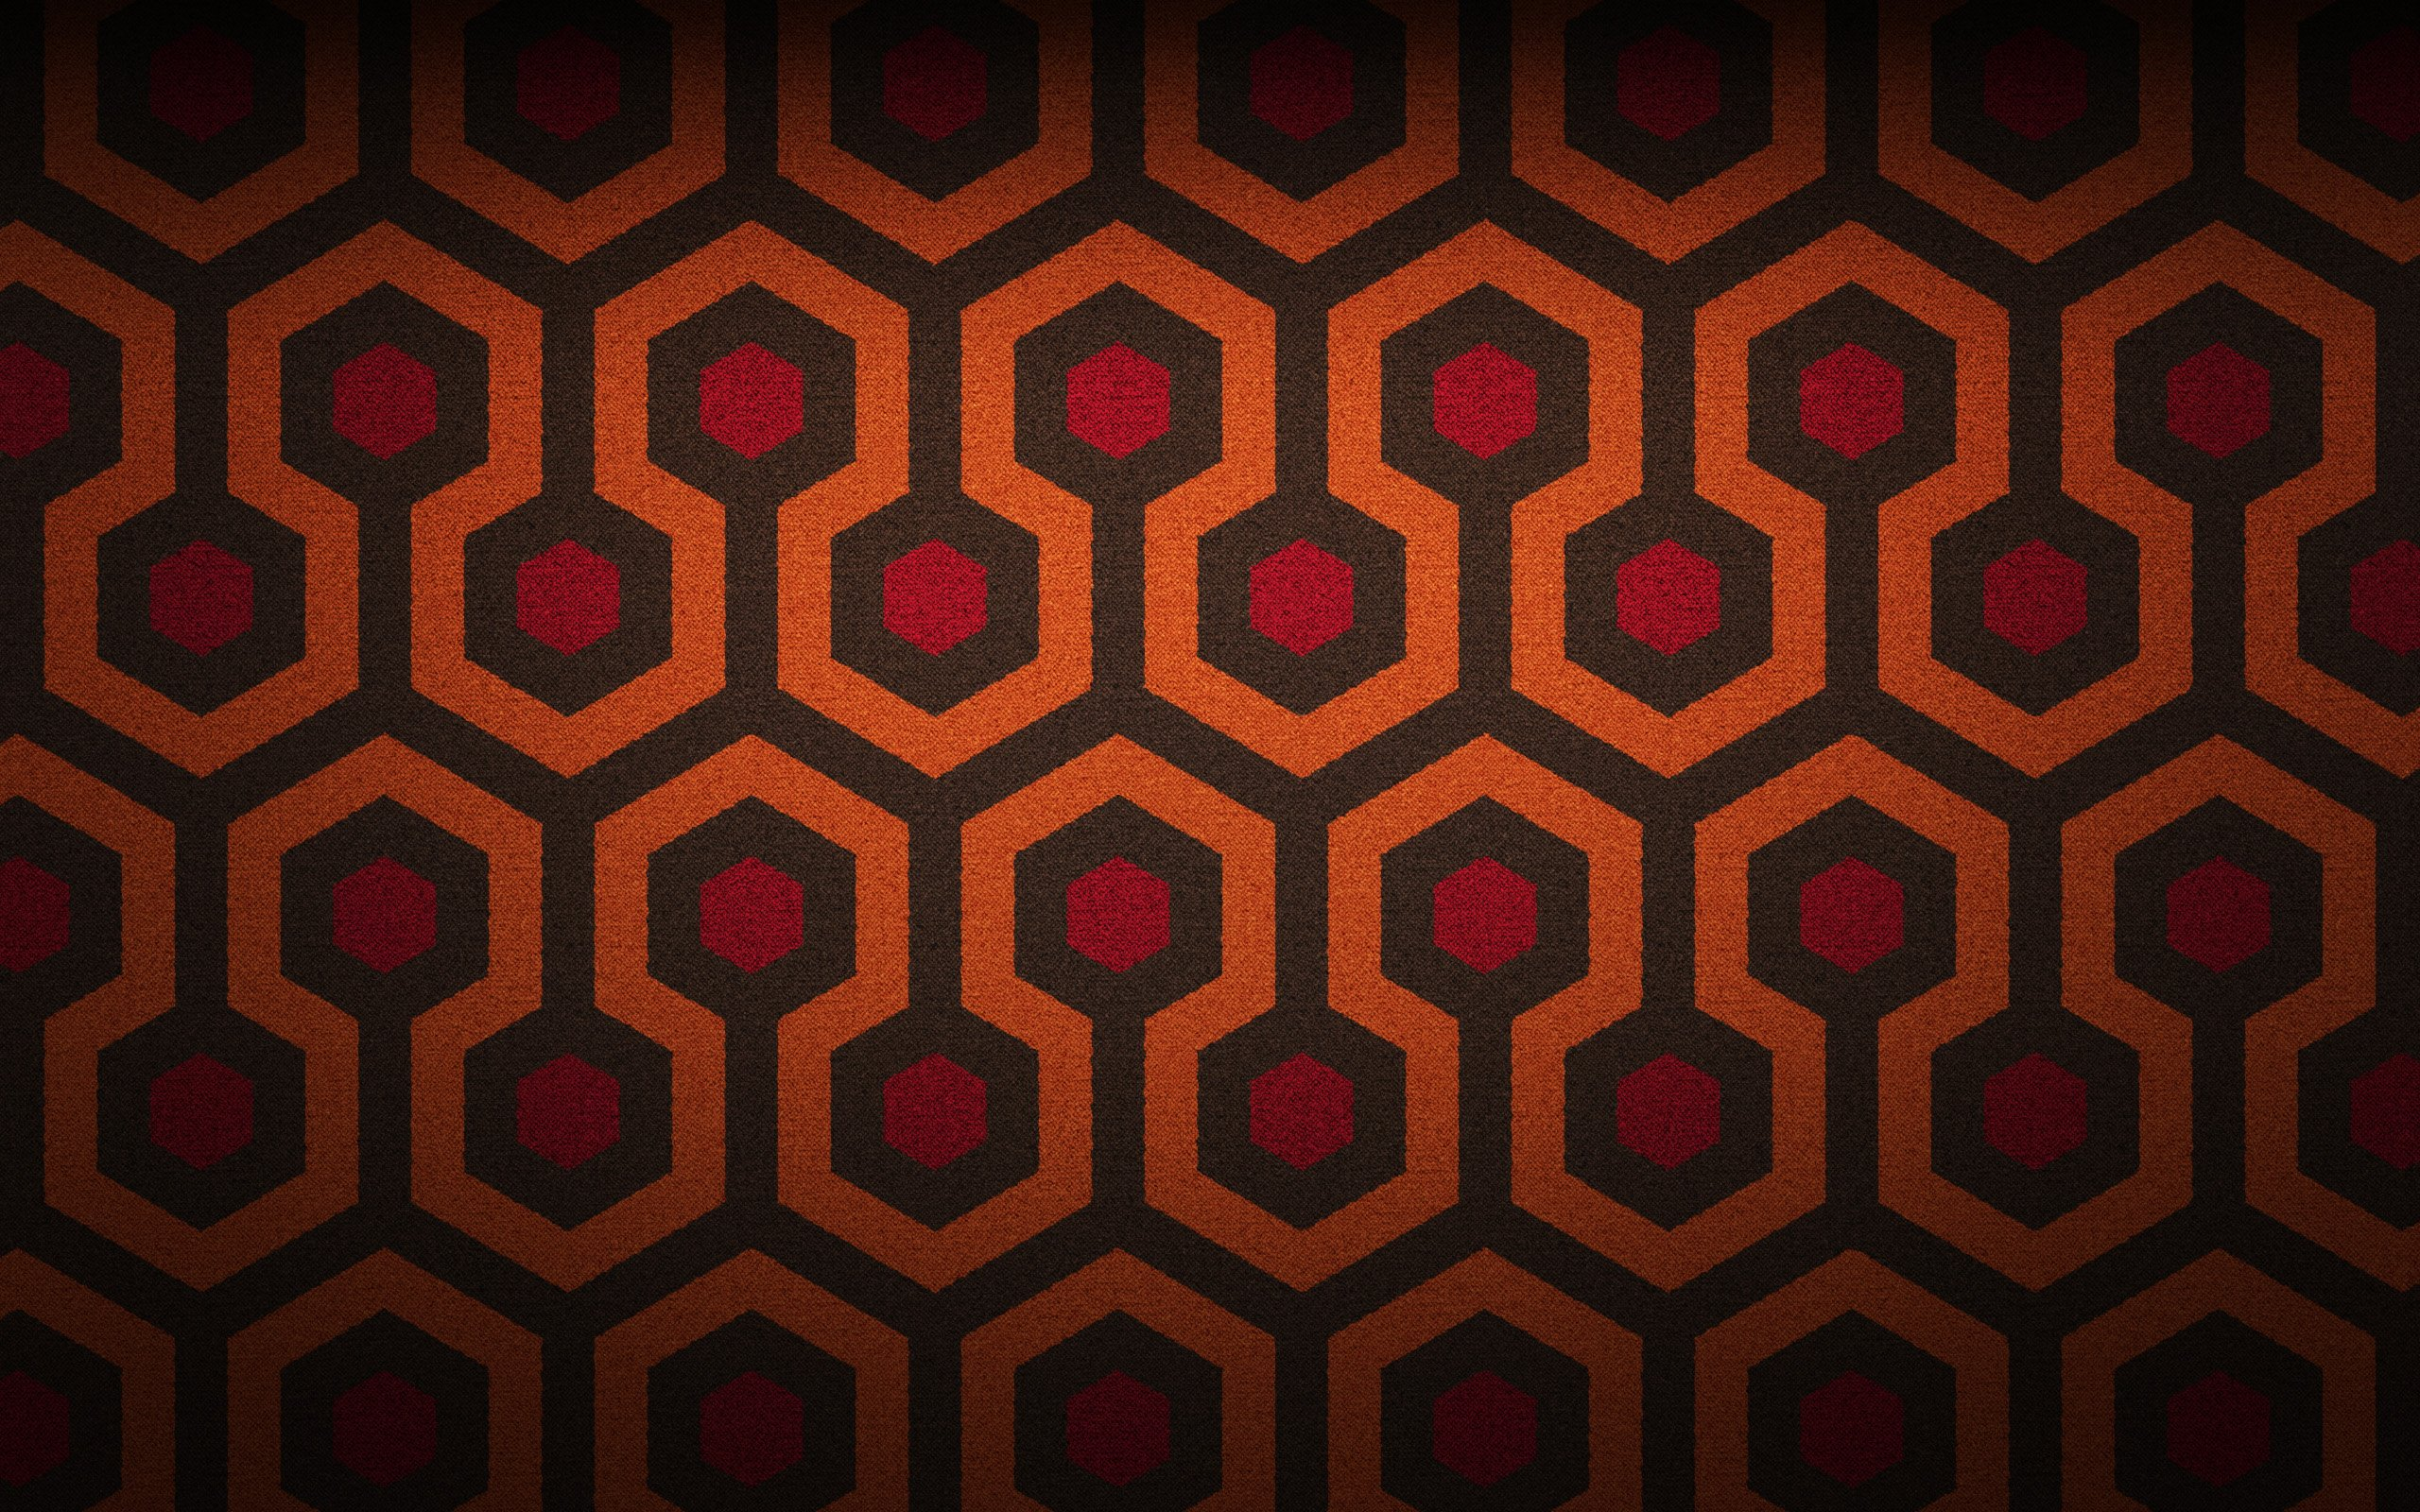 Retro patterned carpet from The Shining